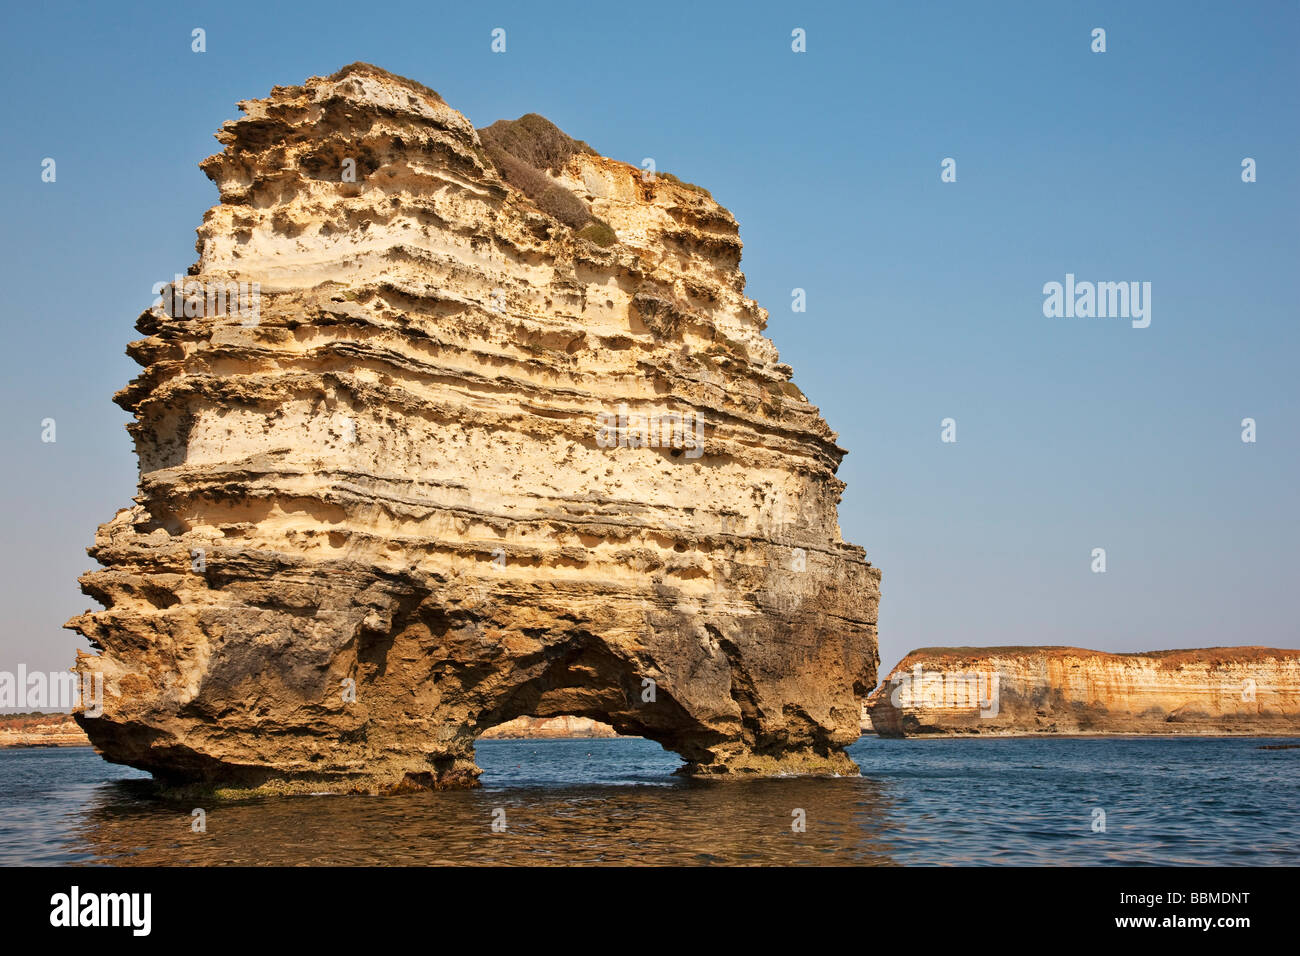 Australia, Victoria. Limestone stacks in the Bay of Islands, off the Great Ocean Road. - Stock Image